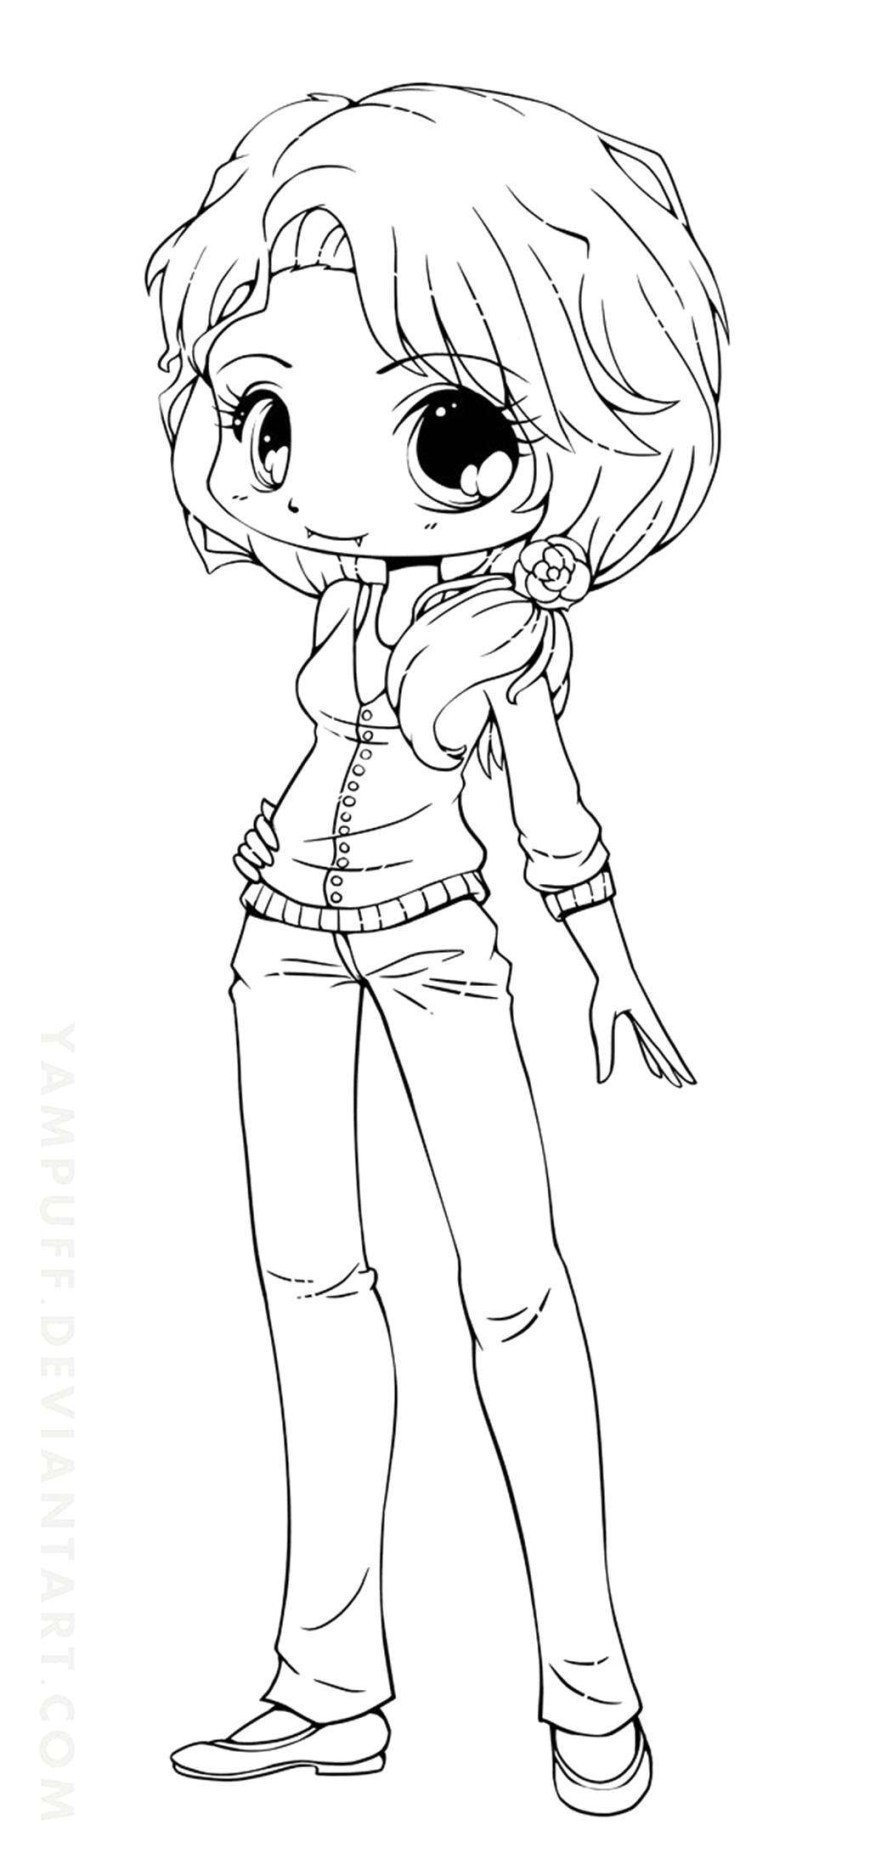 Chibi Coloring Pages Chibi Anime Girl Coloring Pages Simple Seomybrand Com Page 10242202